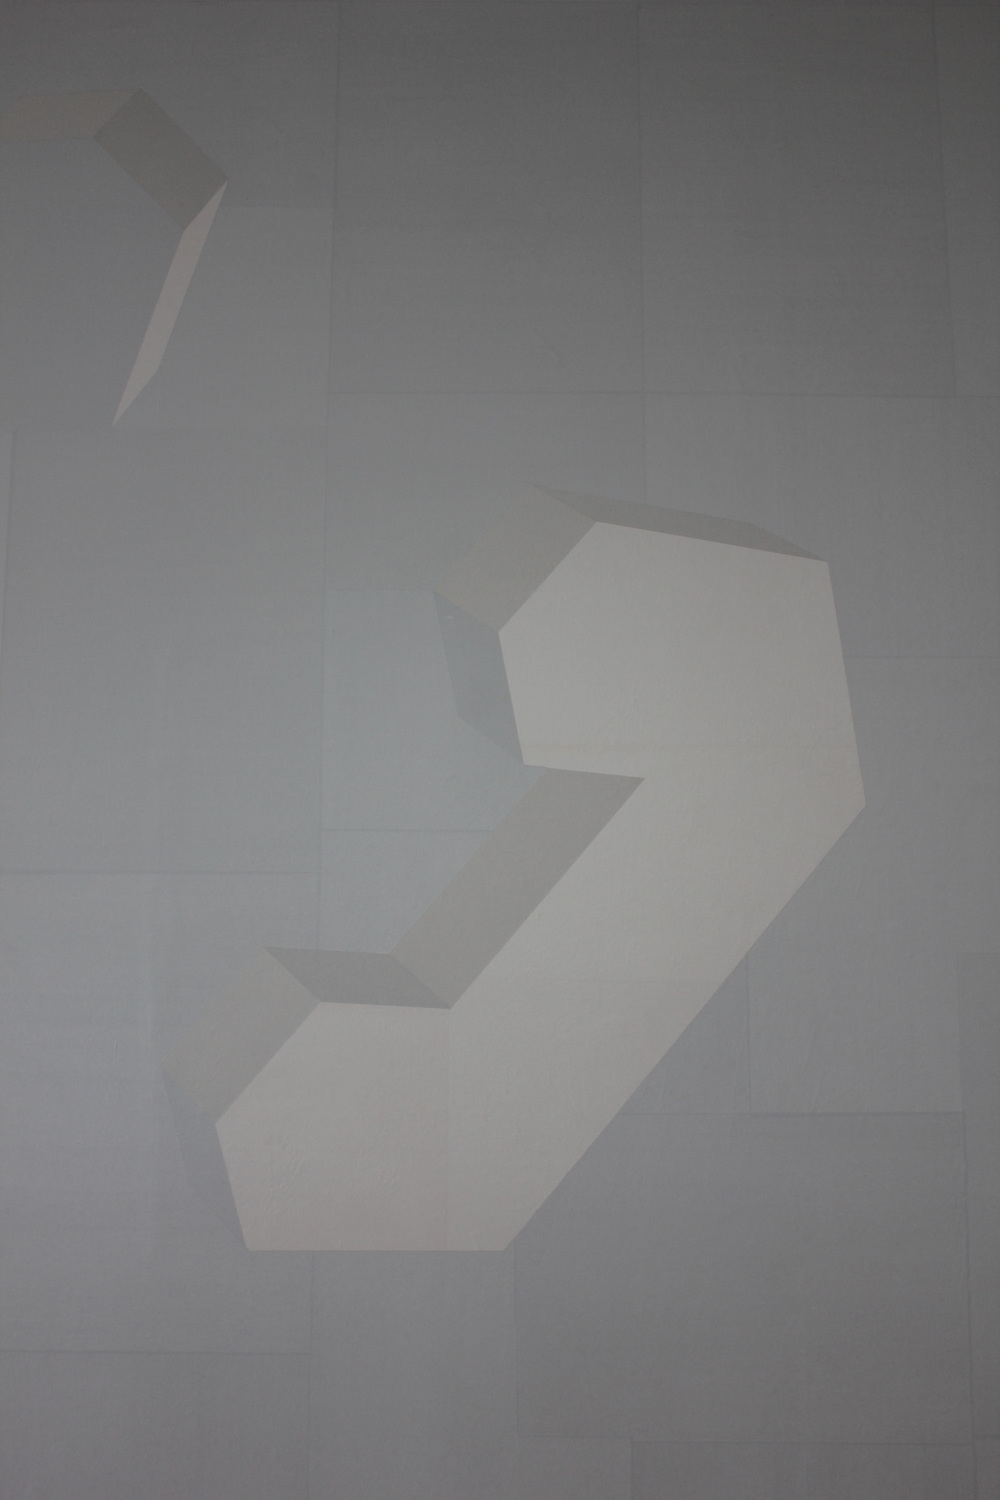 57-papercut-dlwp-detail2.jpeg